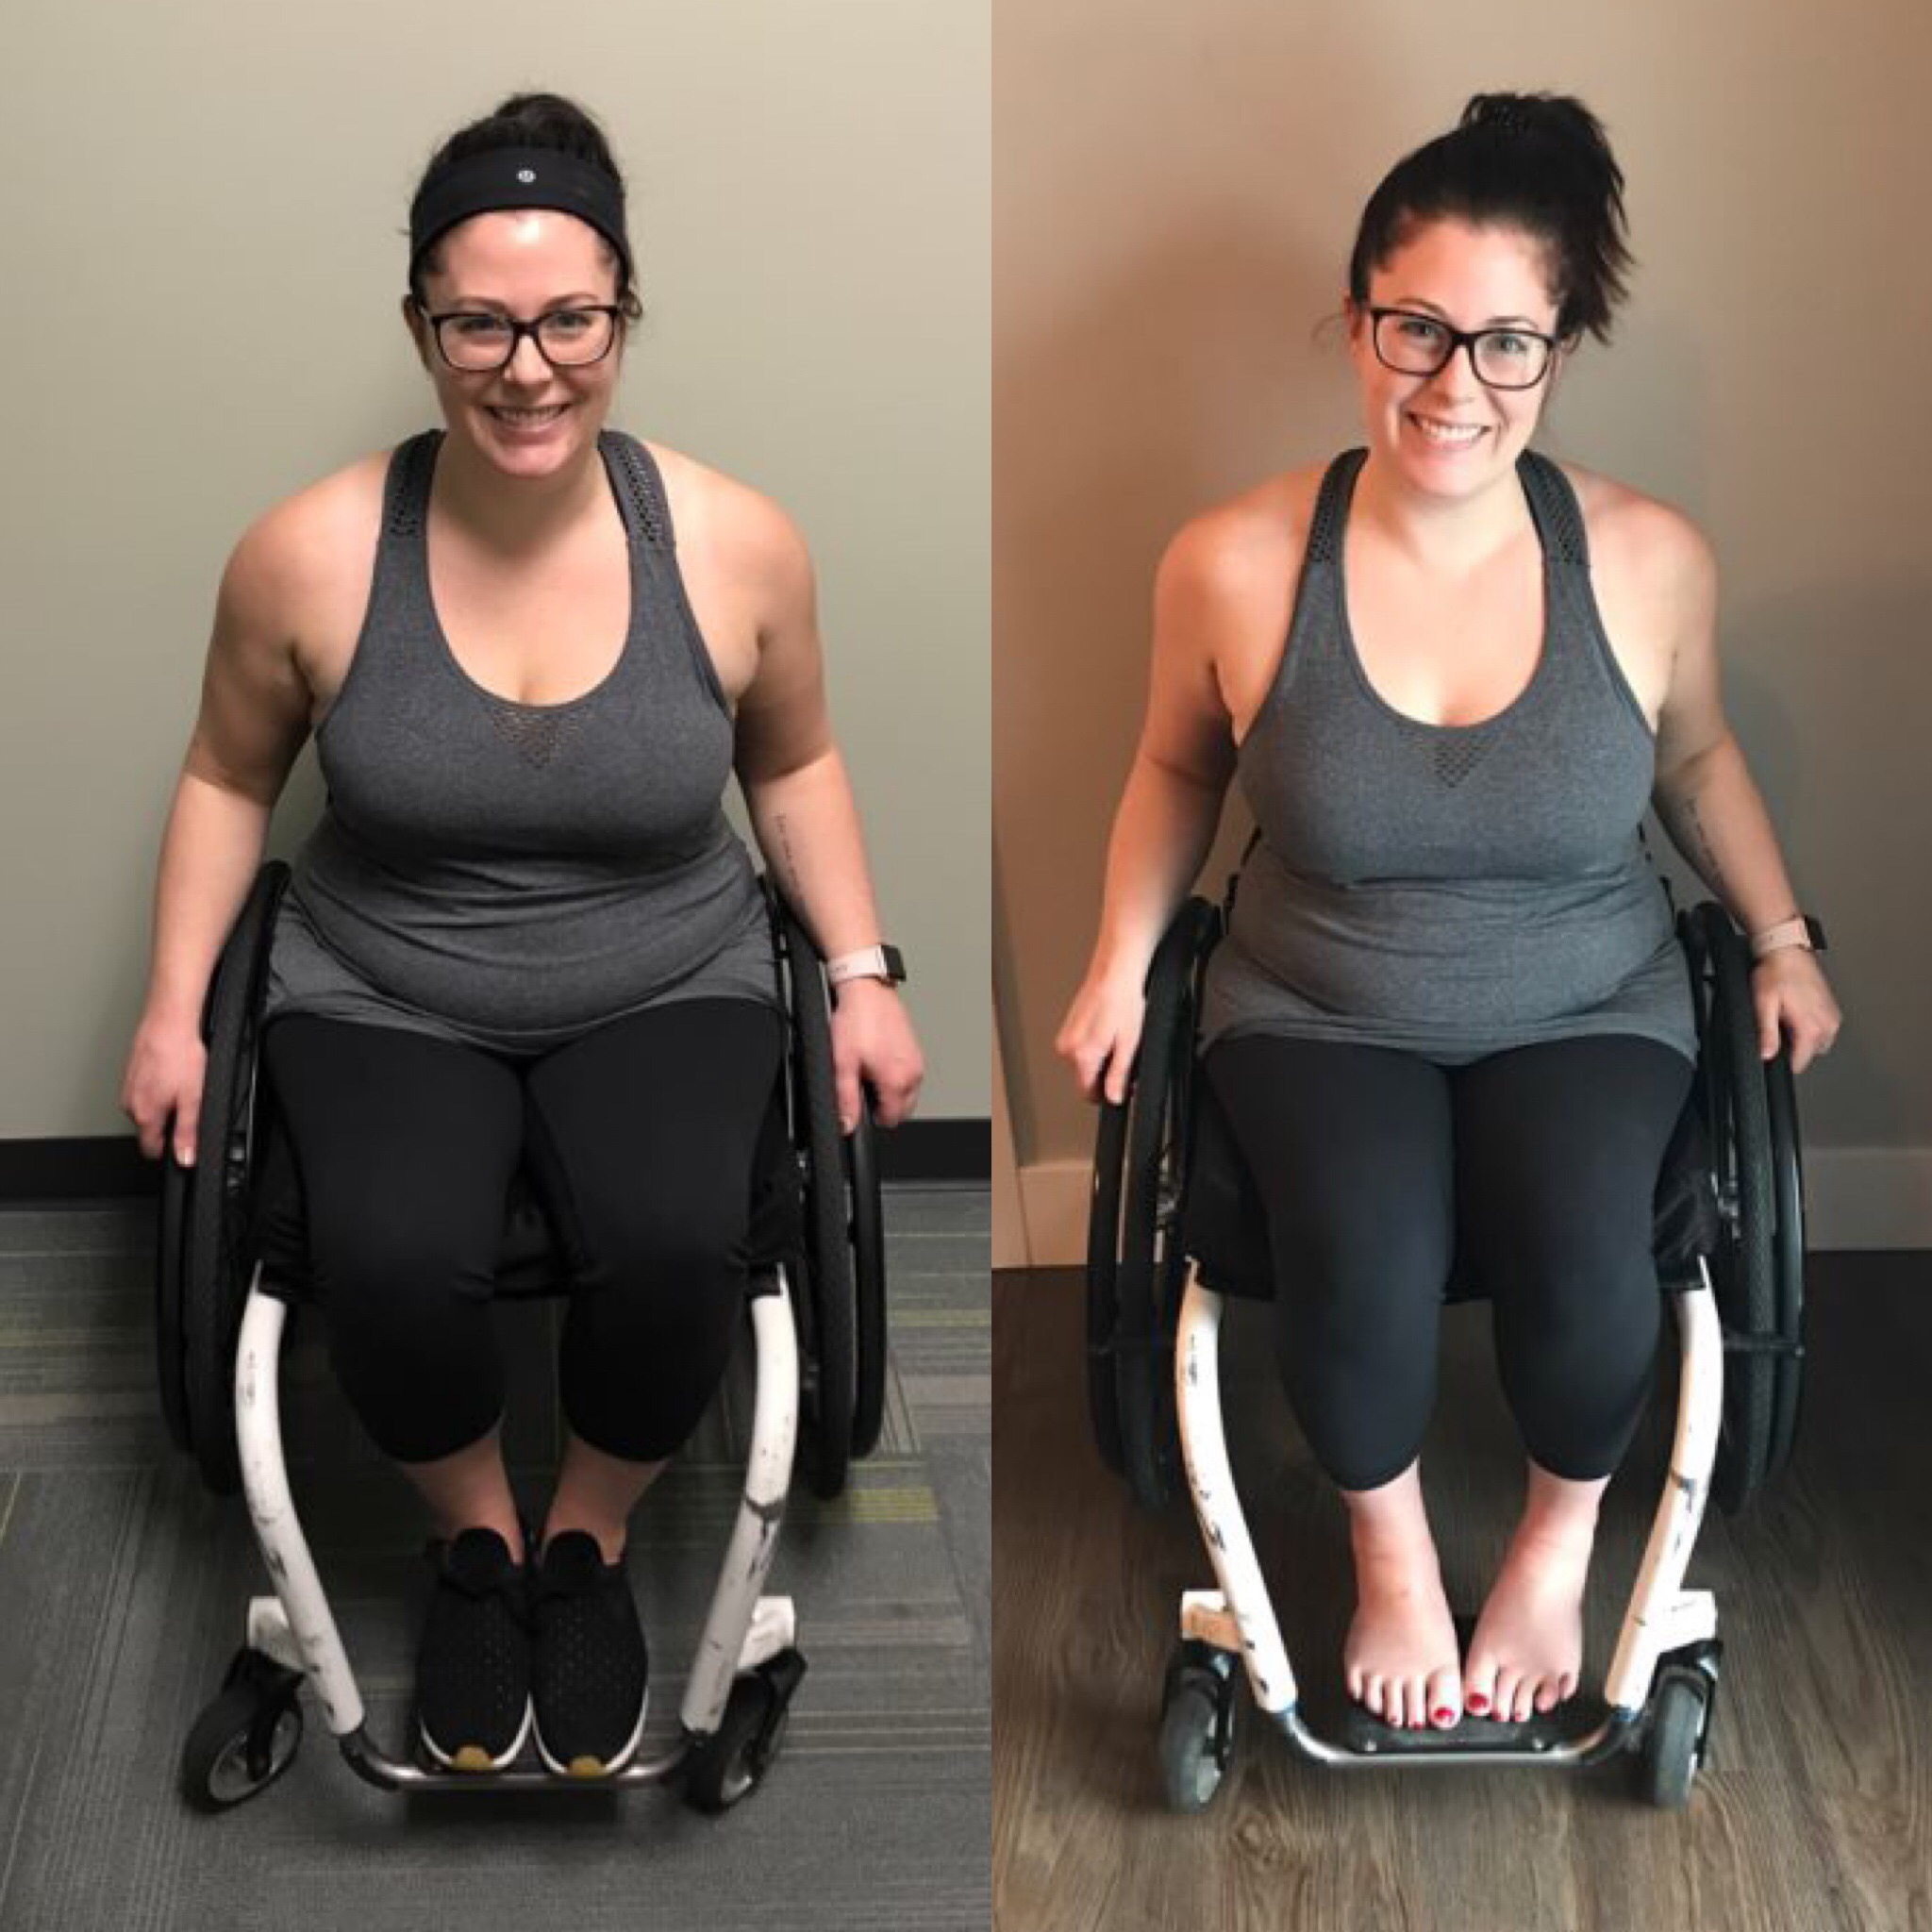 View More: http://amazingdayphotography.pass.us/true-north-strength-and-fitnessTransformation Challenge Update—Half-Way There